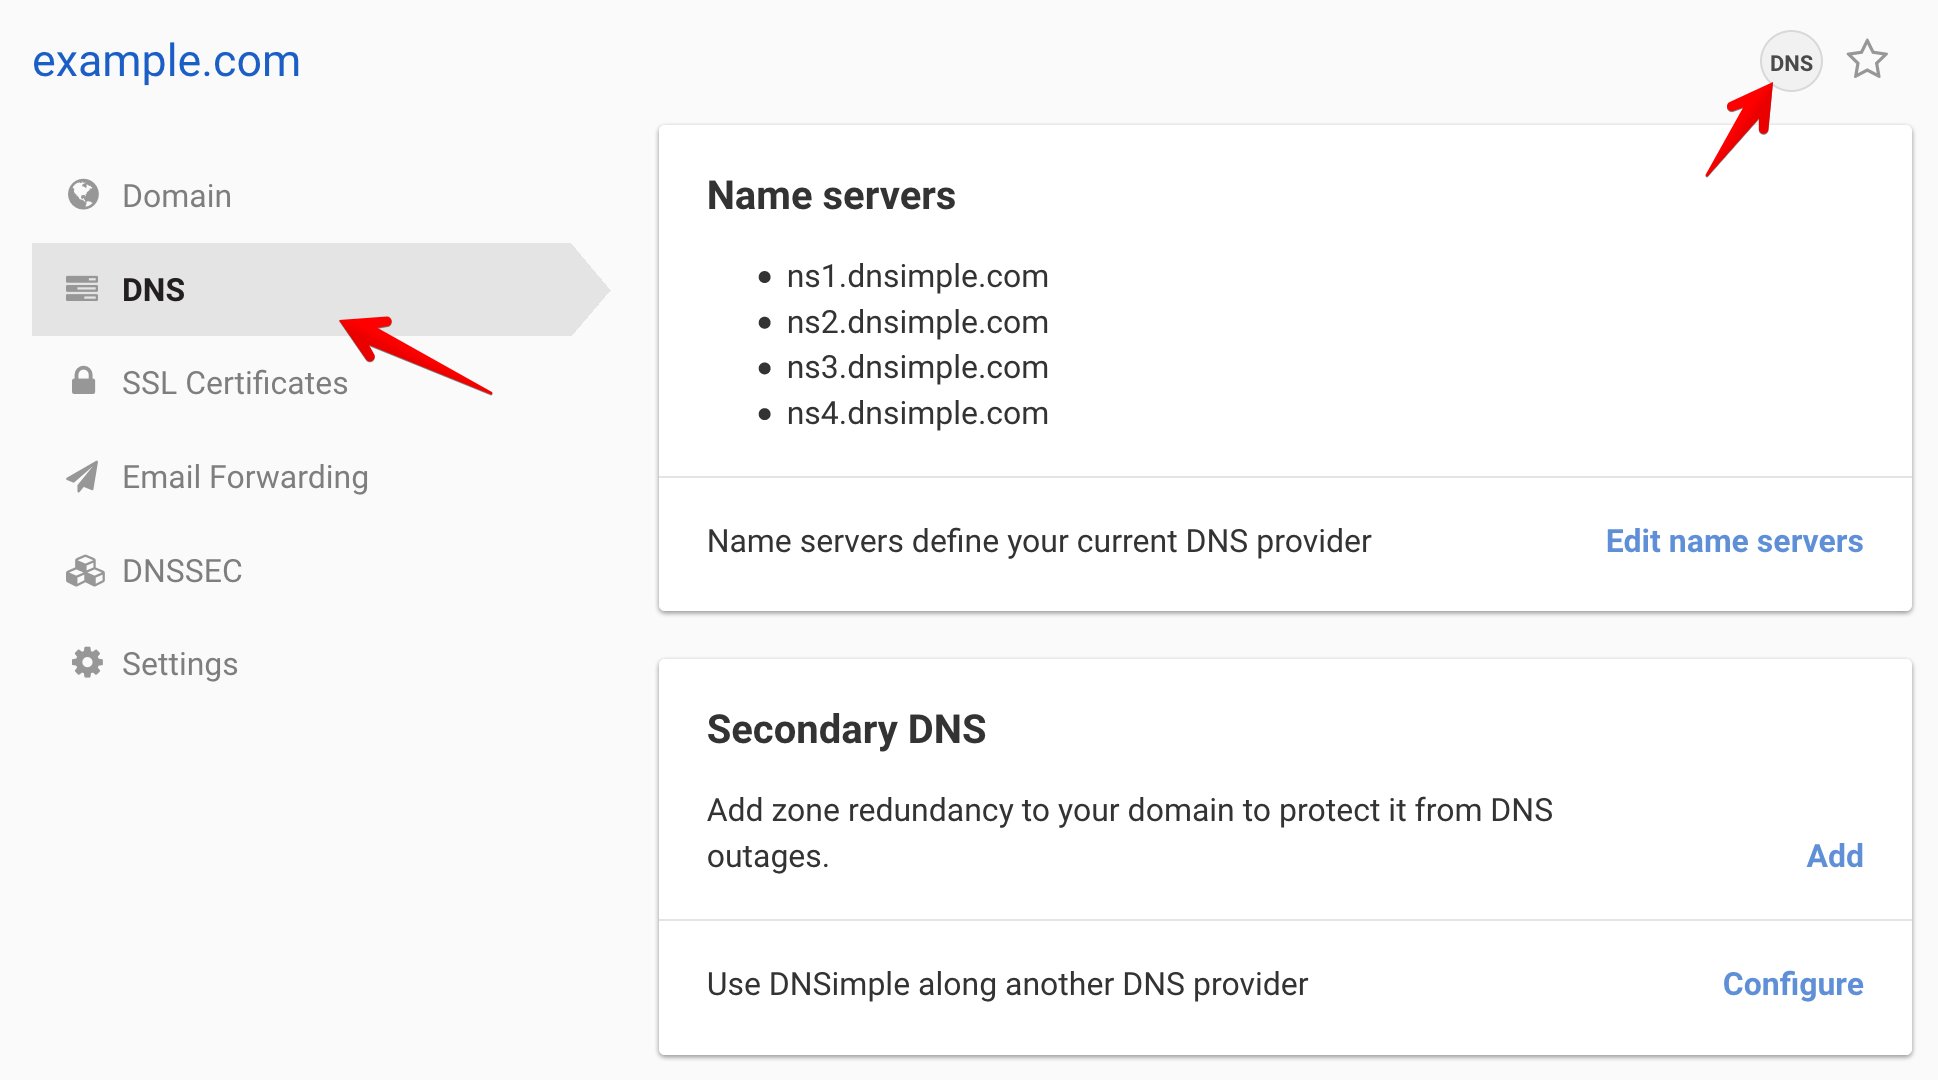 Adding a Subdomain - DNSimple Help